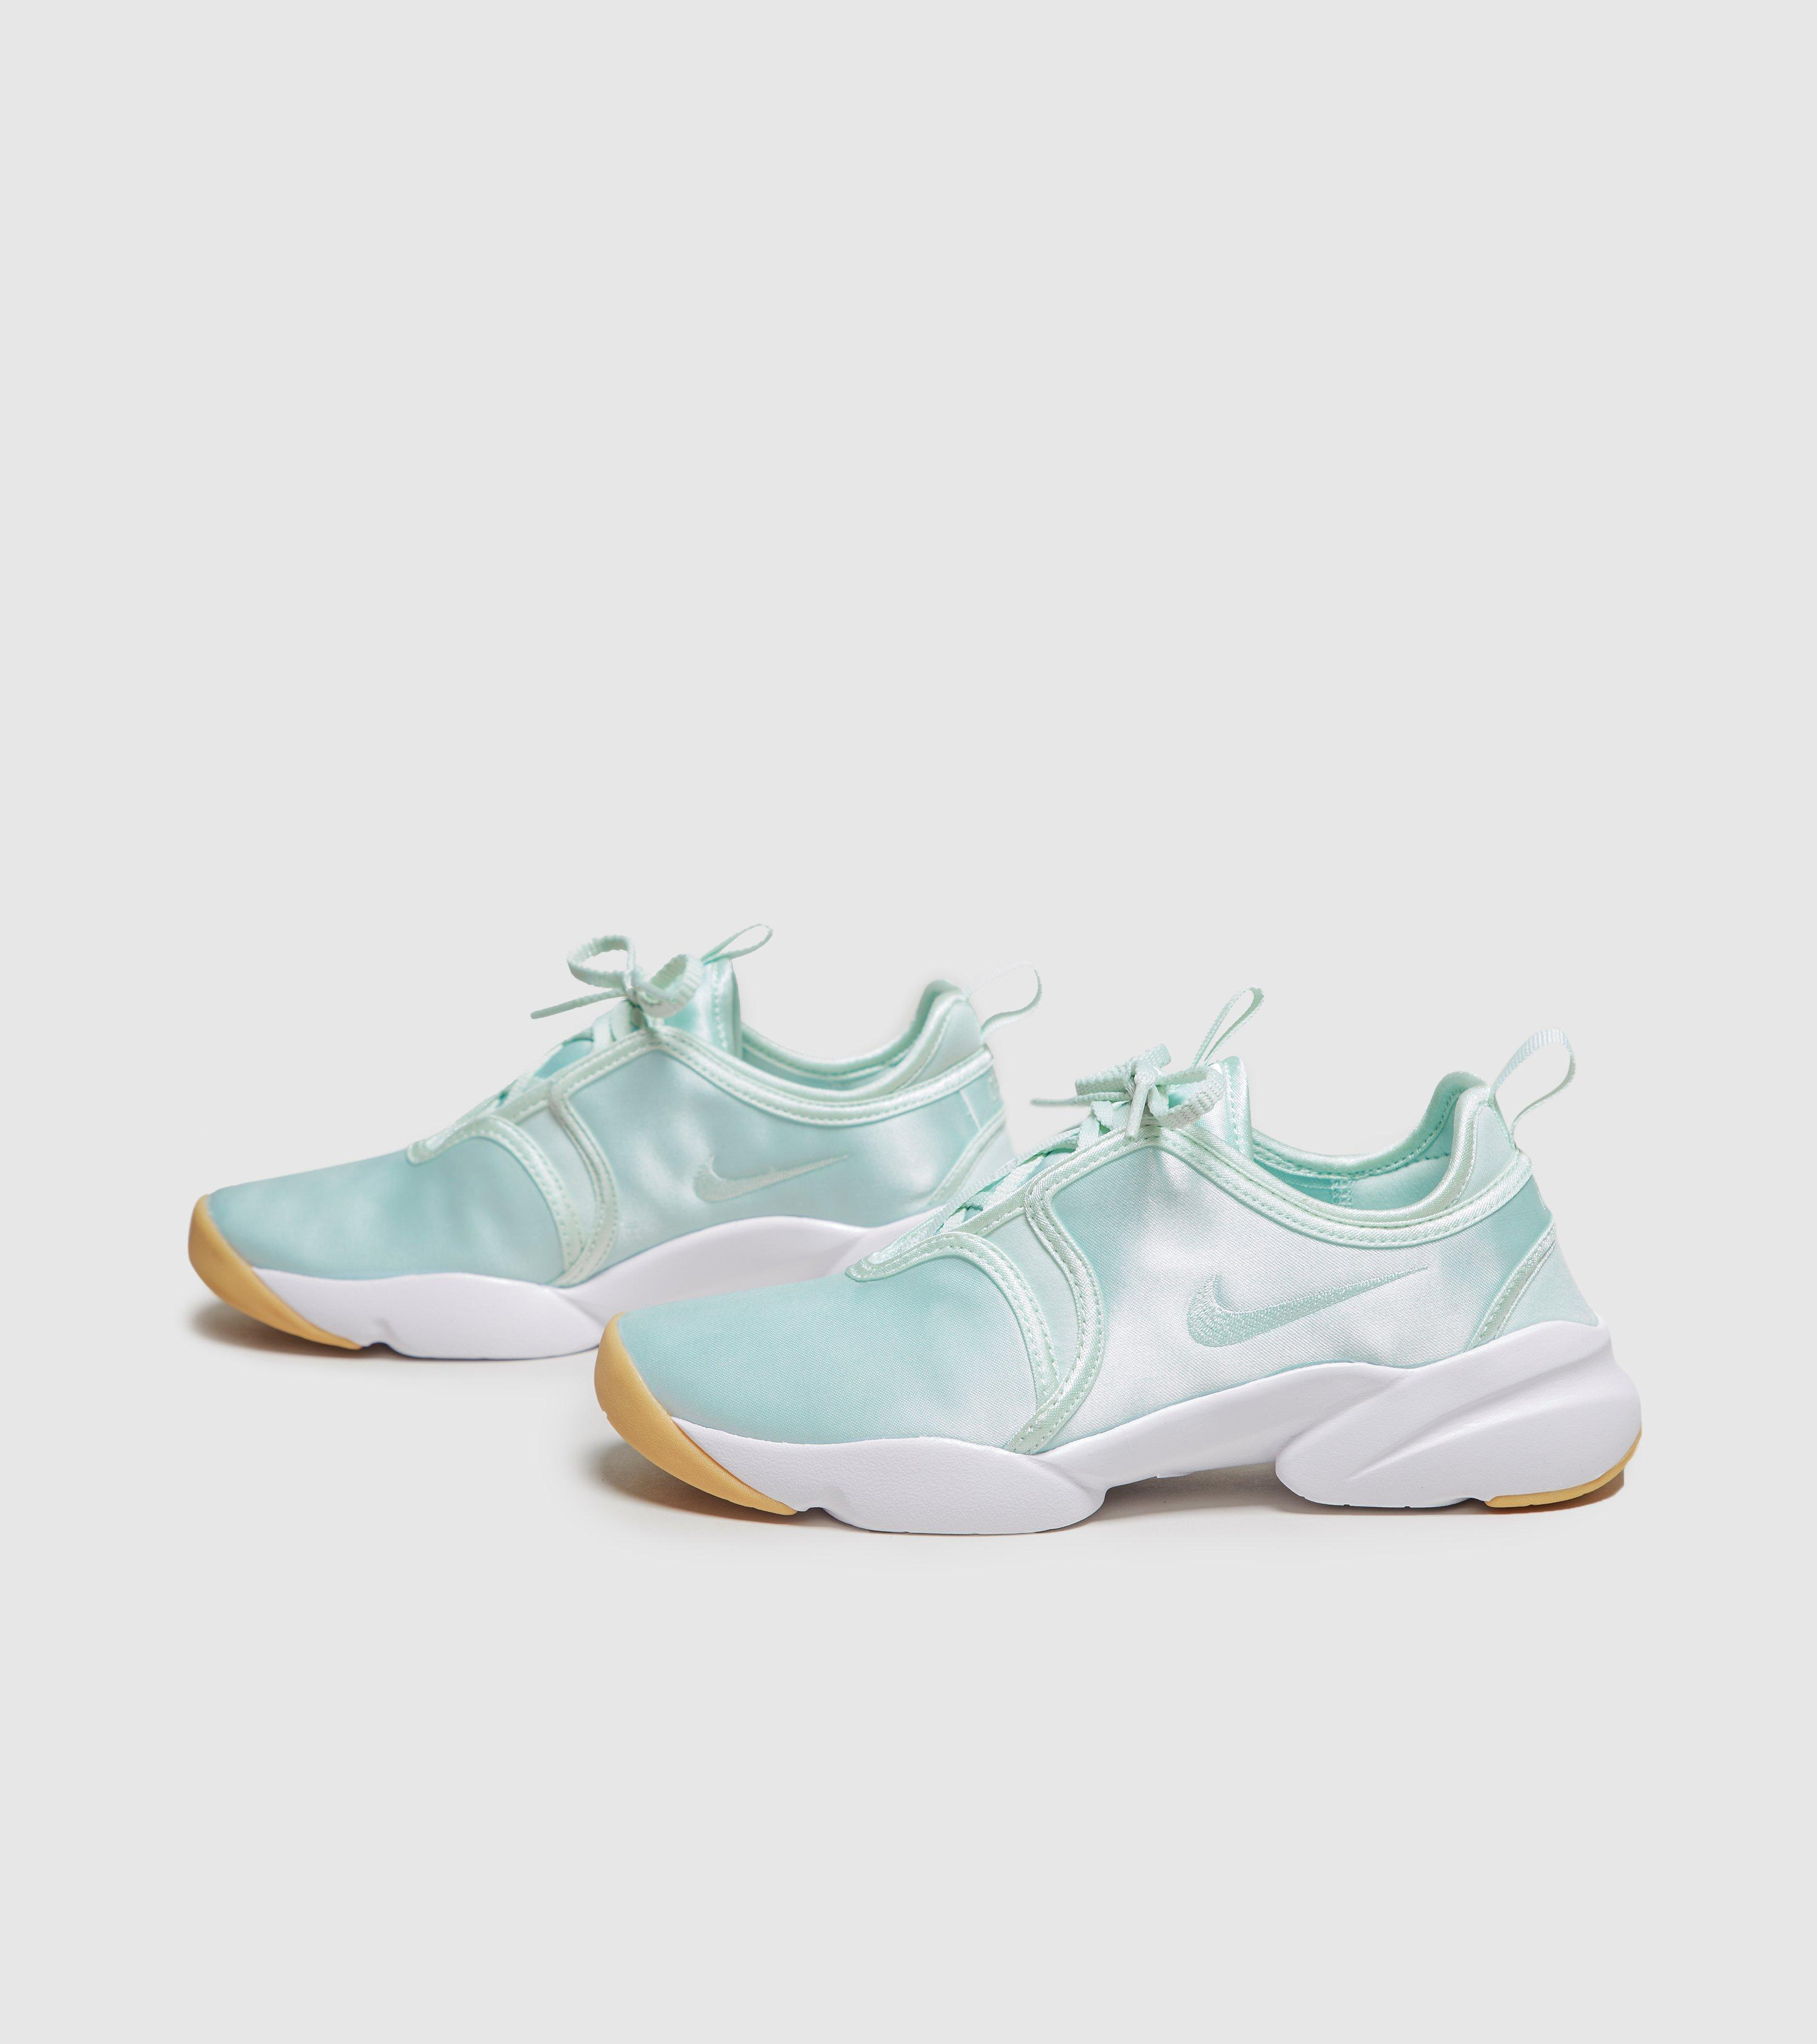 Nike Women S Shoes Pastel Outsole